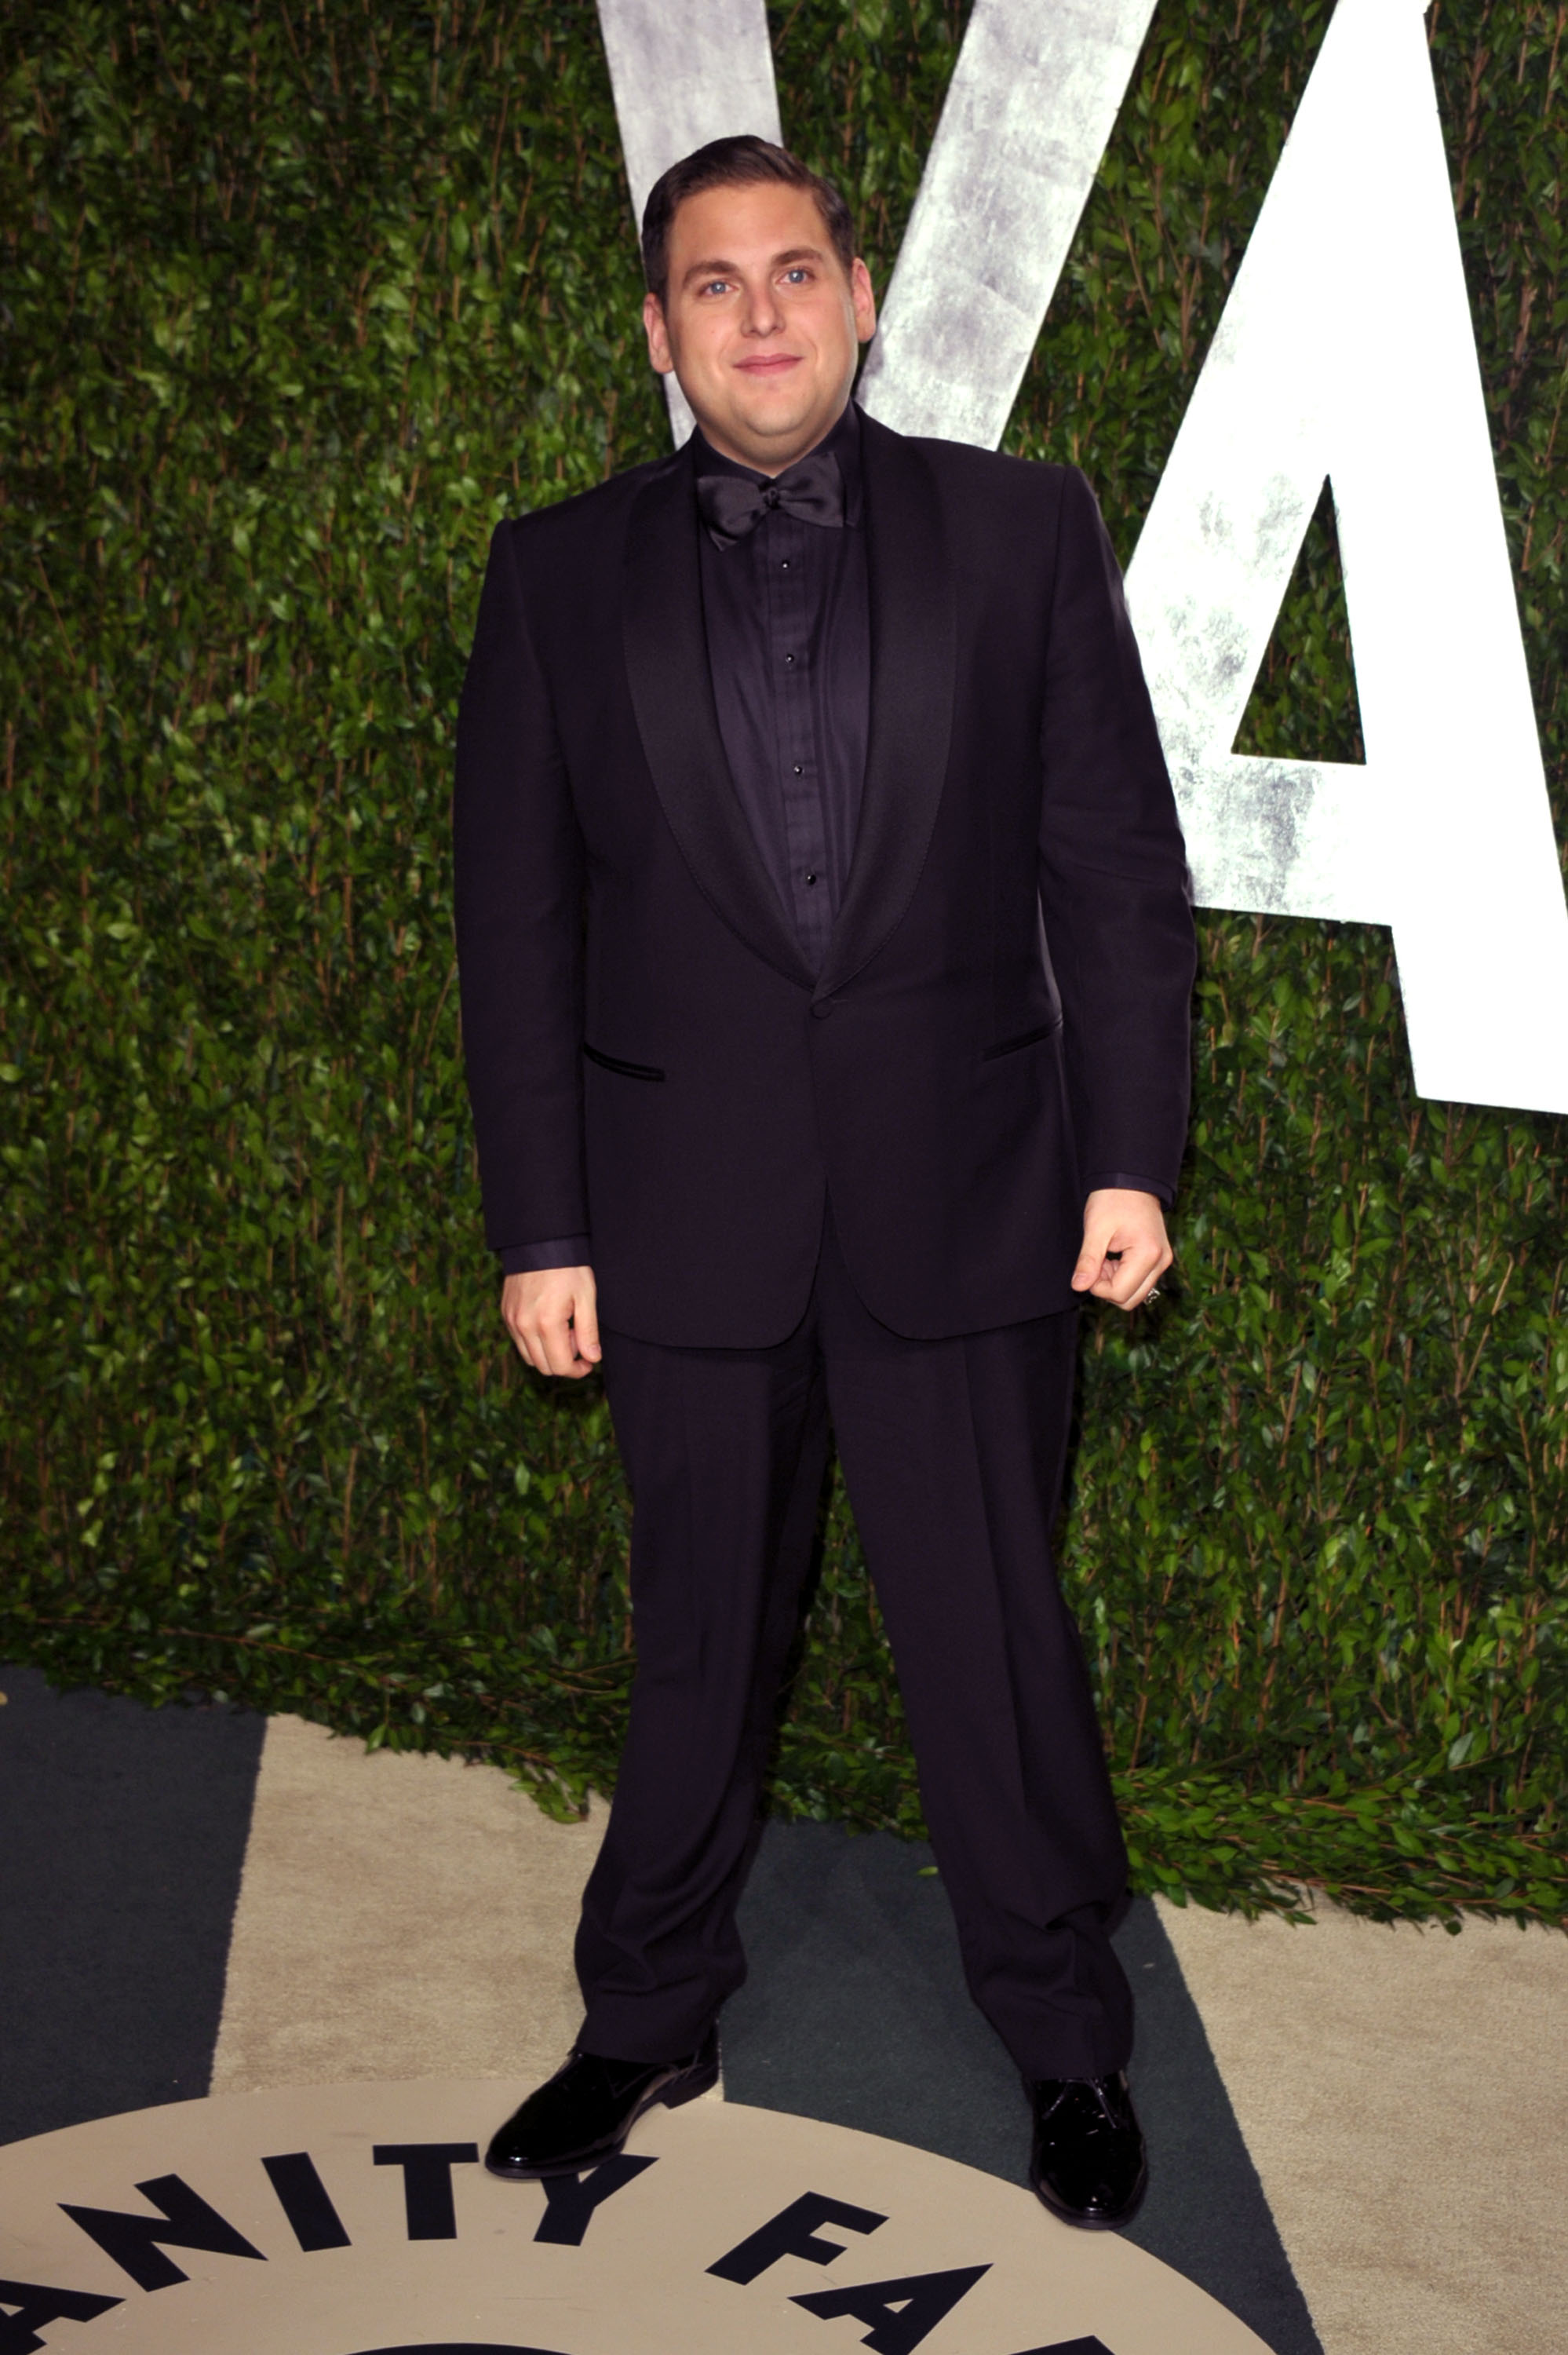 Jonah Hill enters the Vanity Fair party.